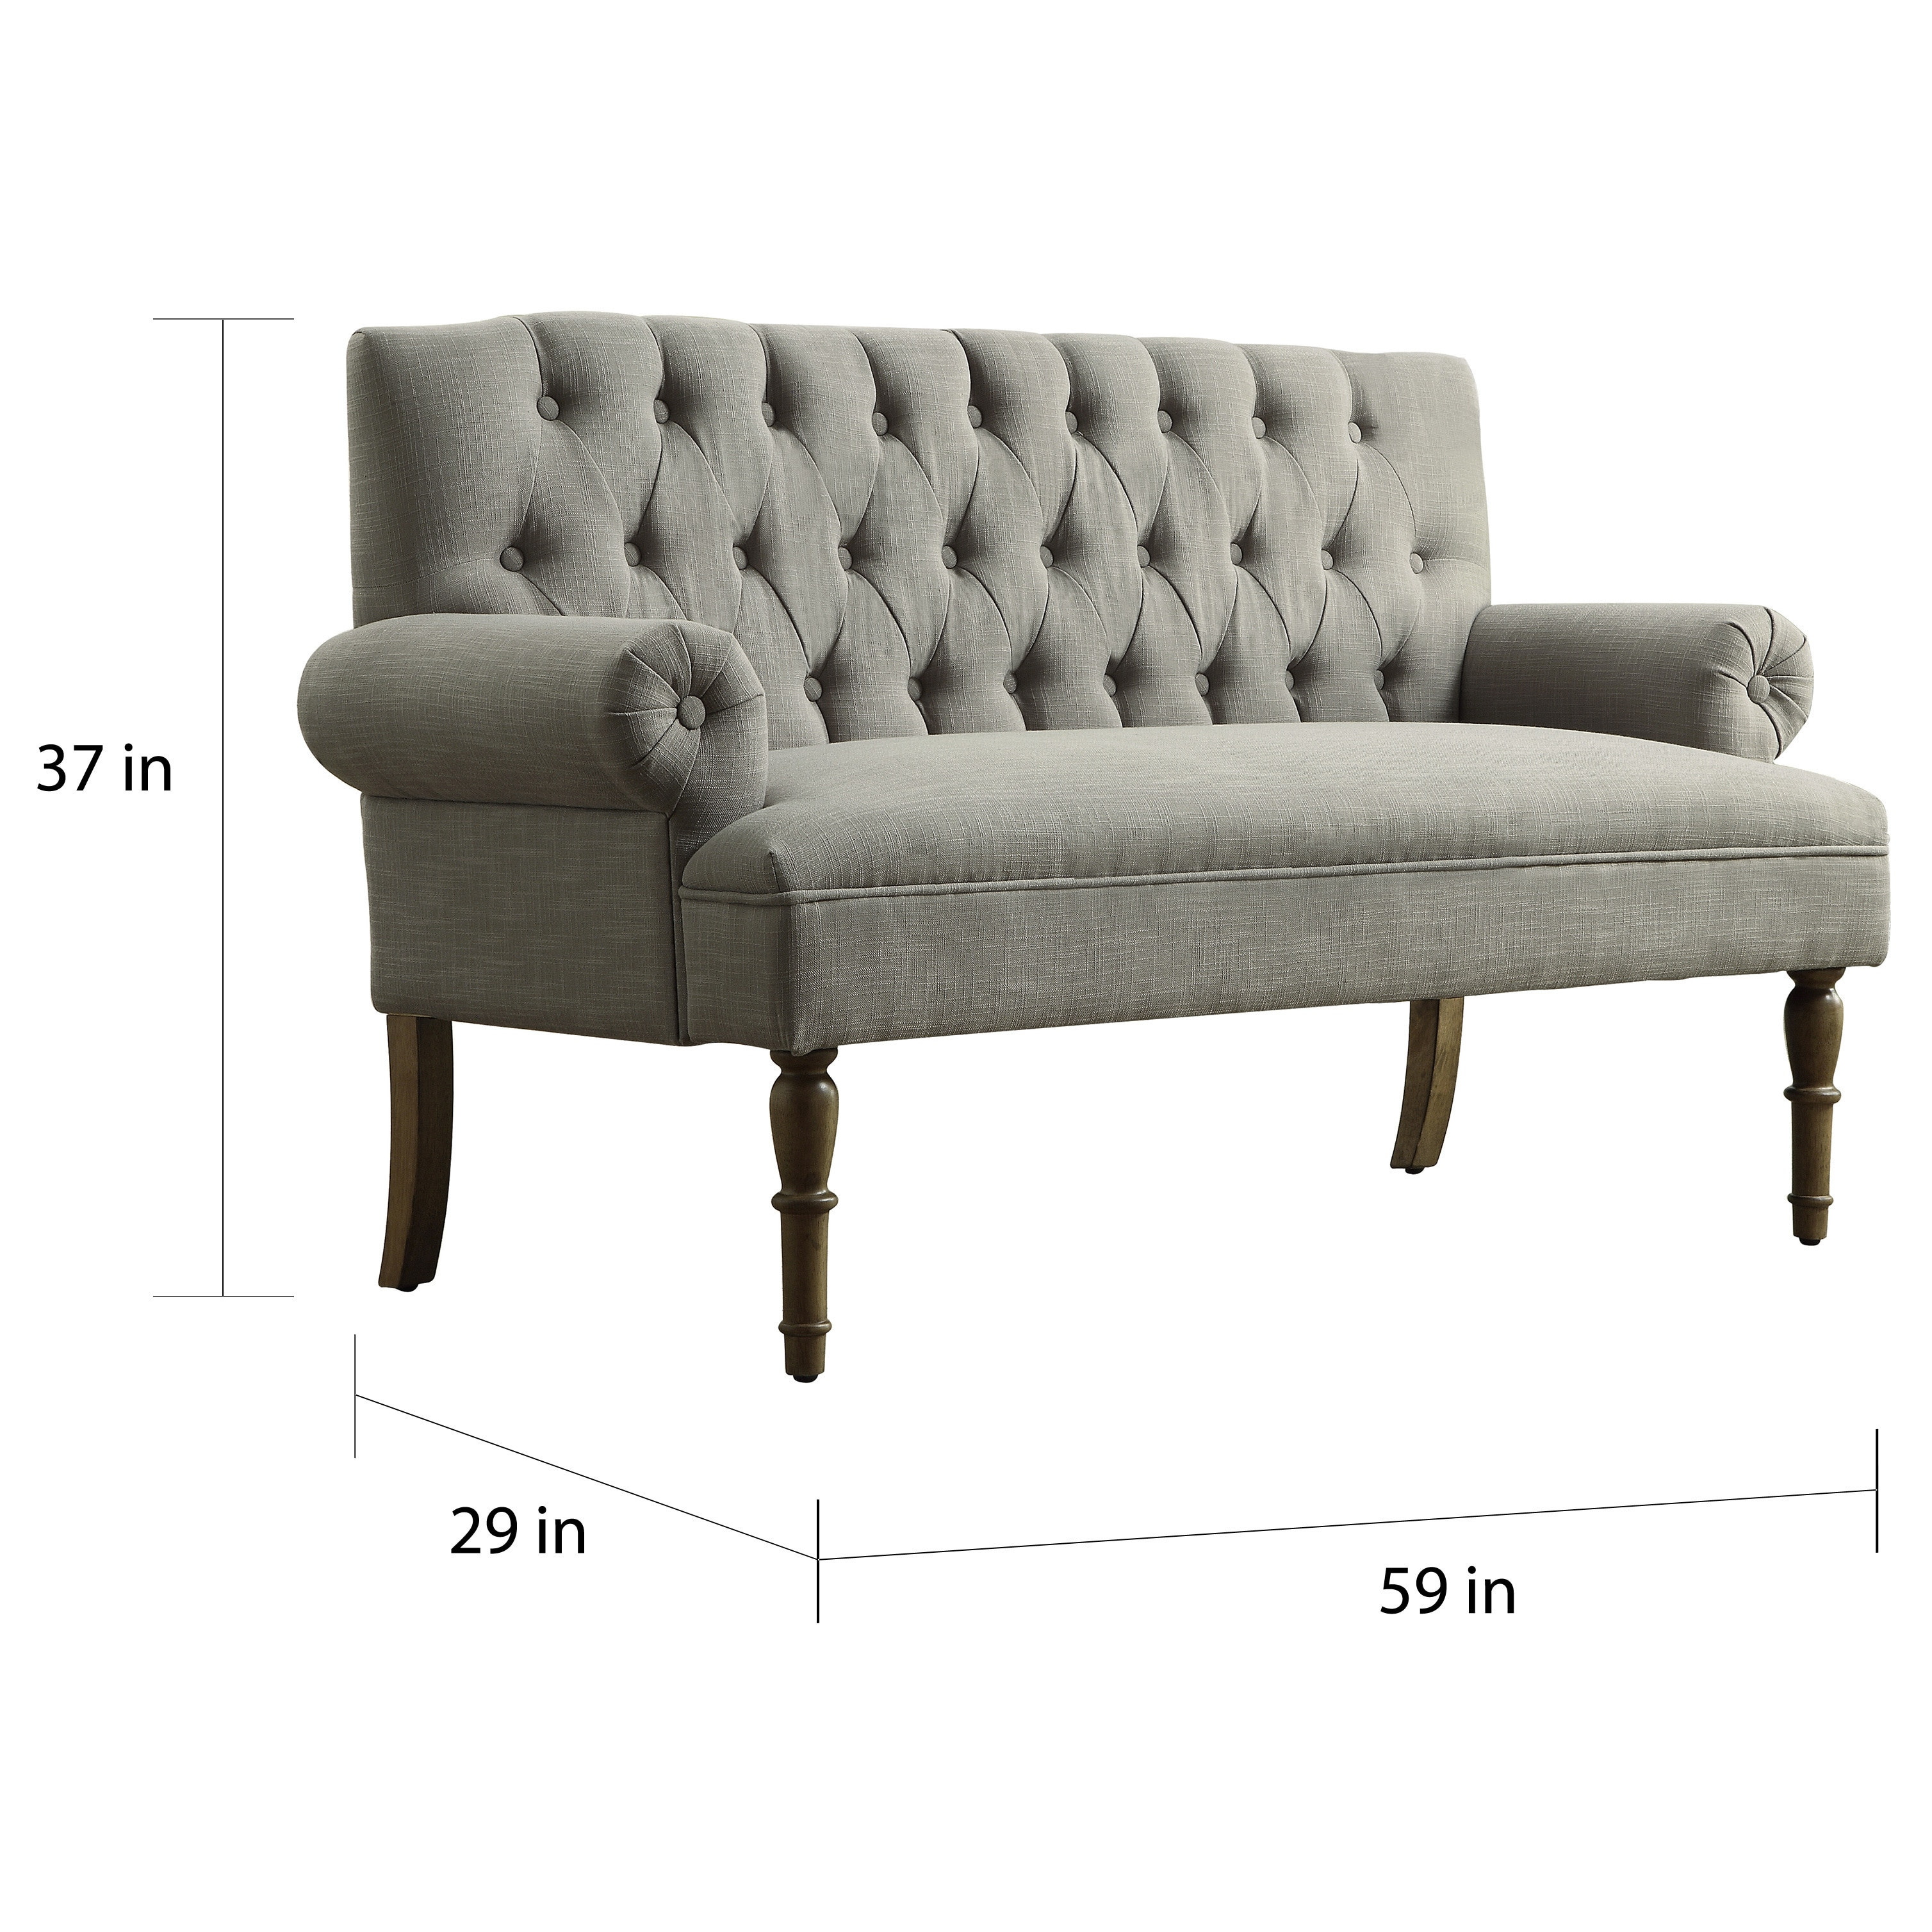 Settee Loveseat Upholstered Settee Loveseat With Tufting Back